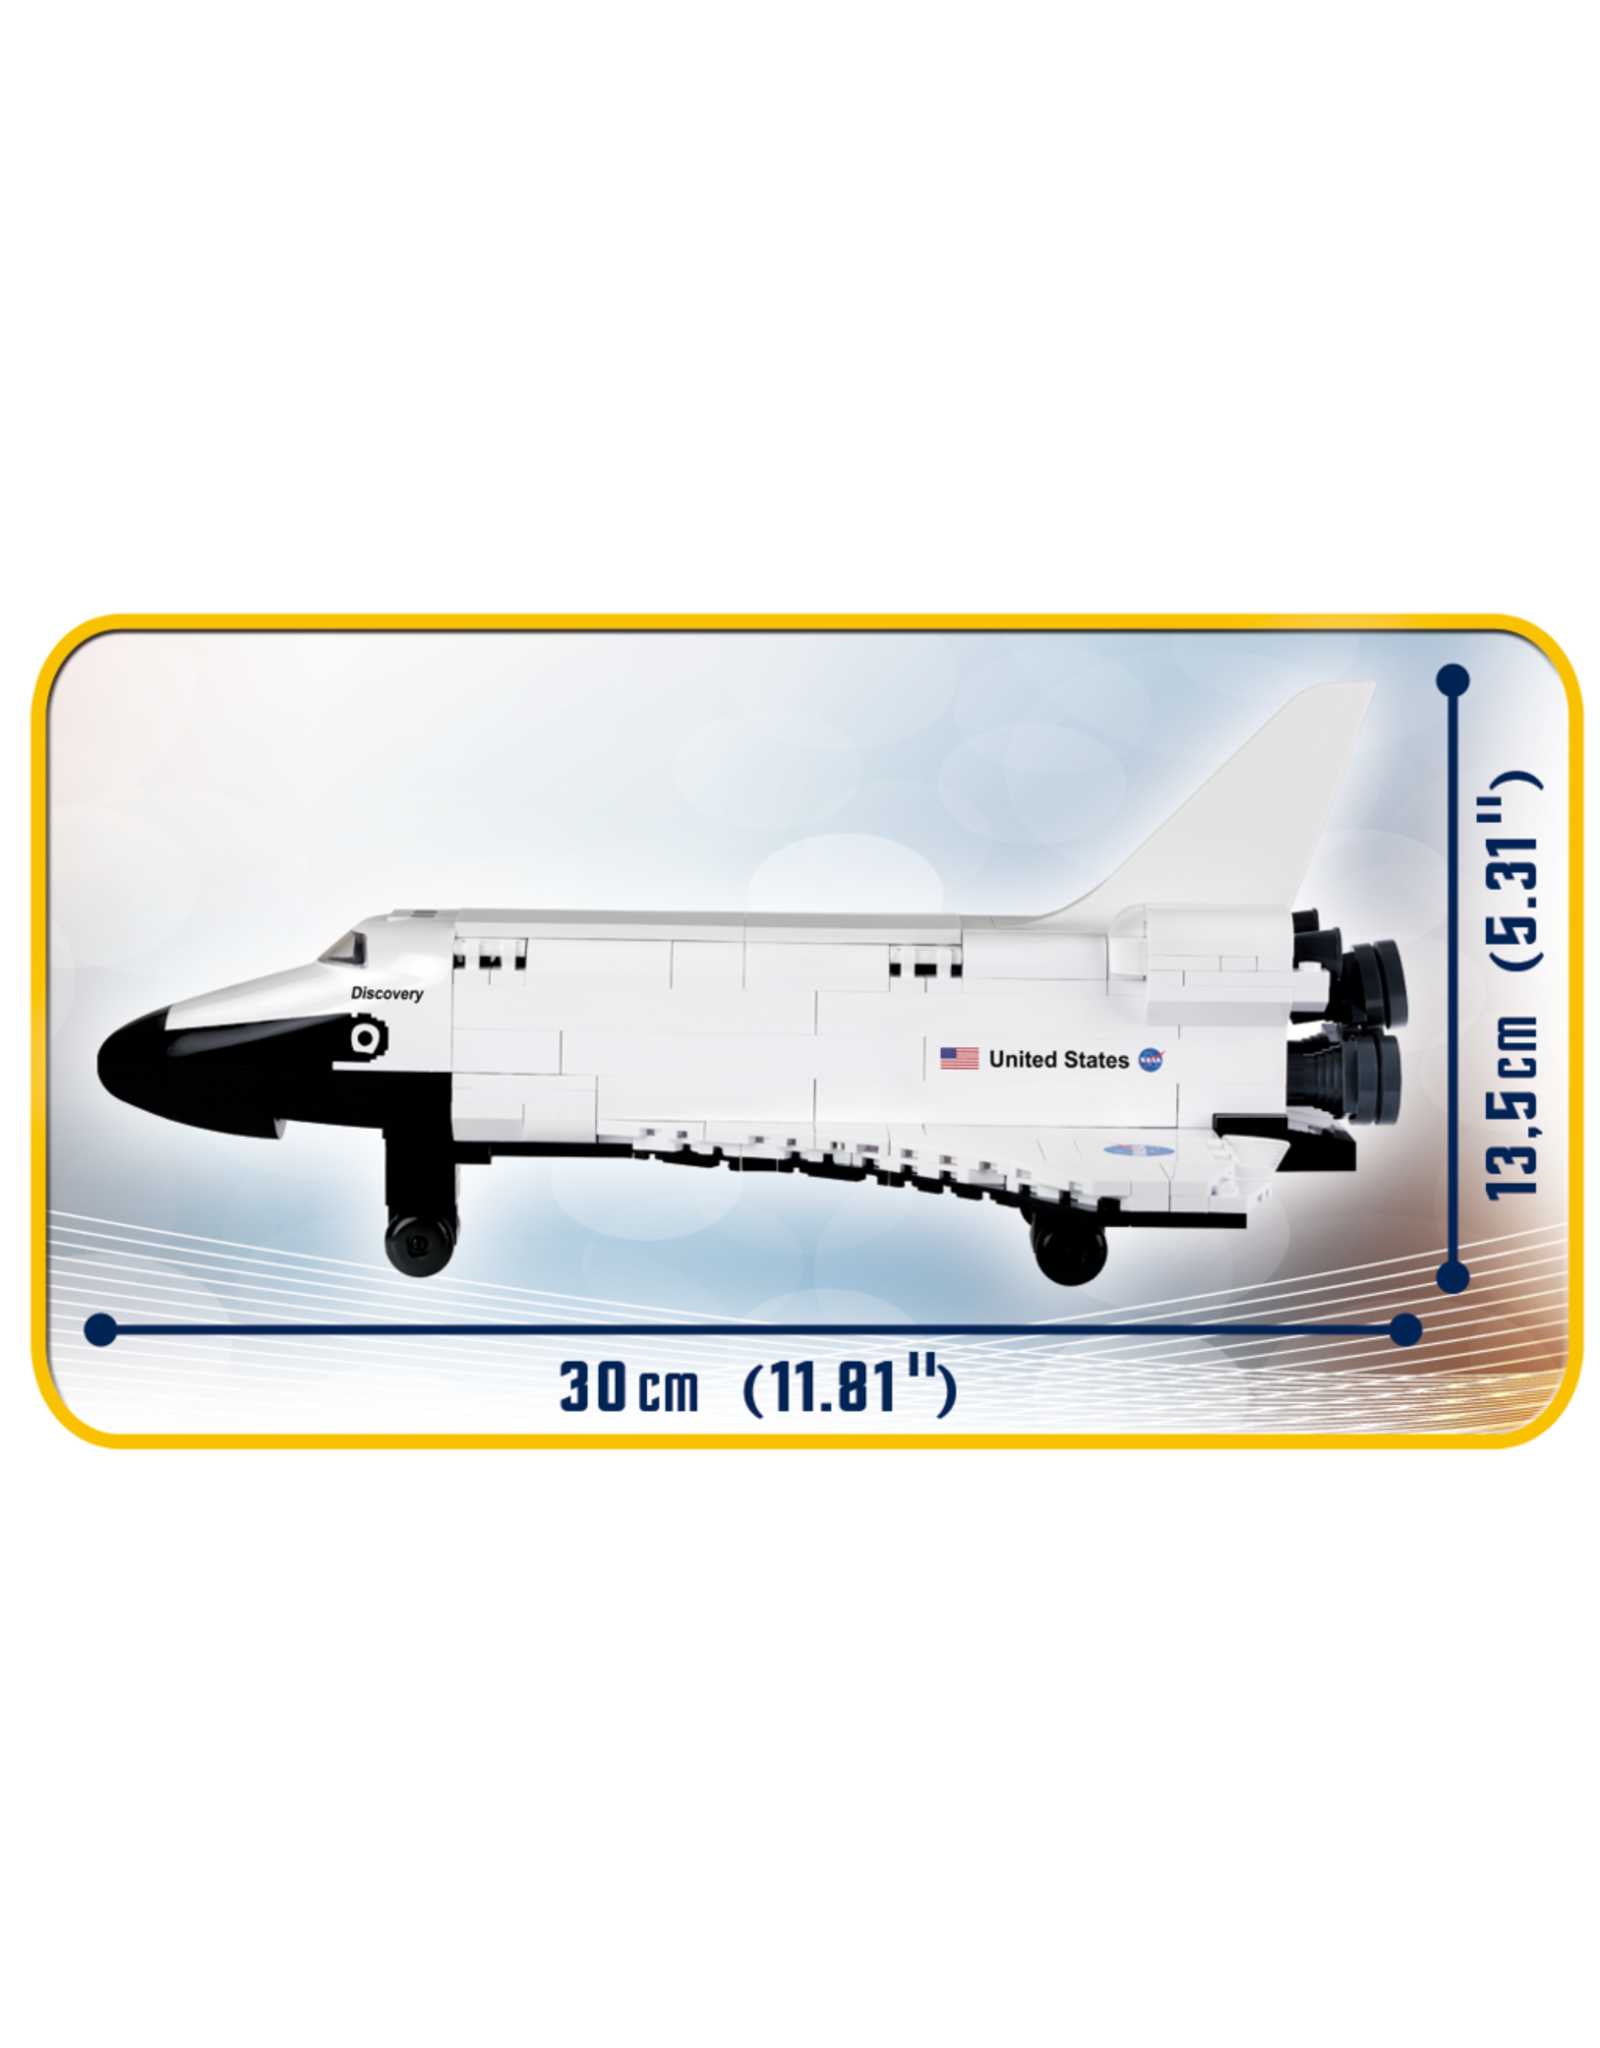 COBI COBI Space Shuttle Discovery 21076